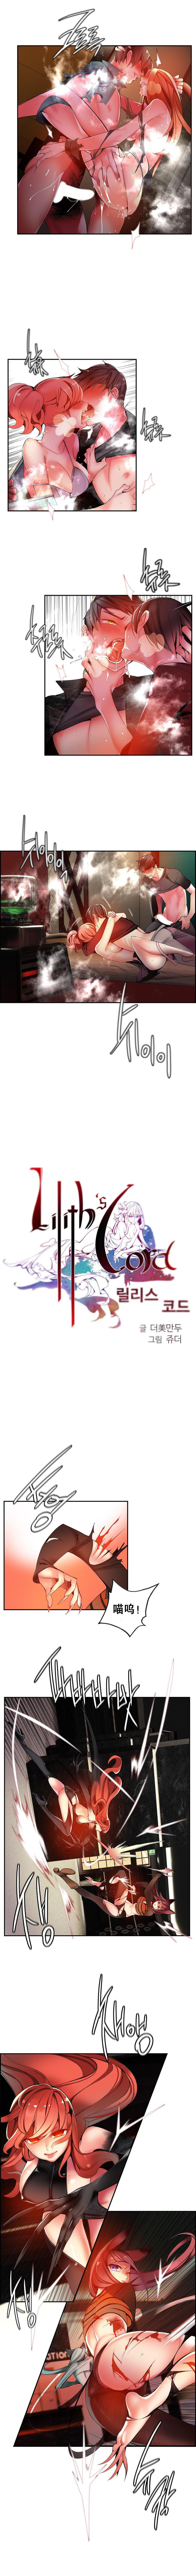 Lilith`s Cord   莉莉丝的脐带 Ch.1-37 489